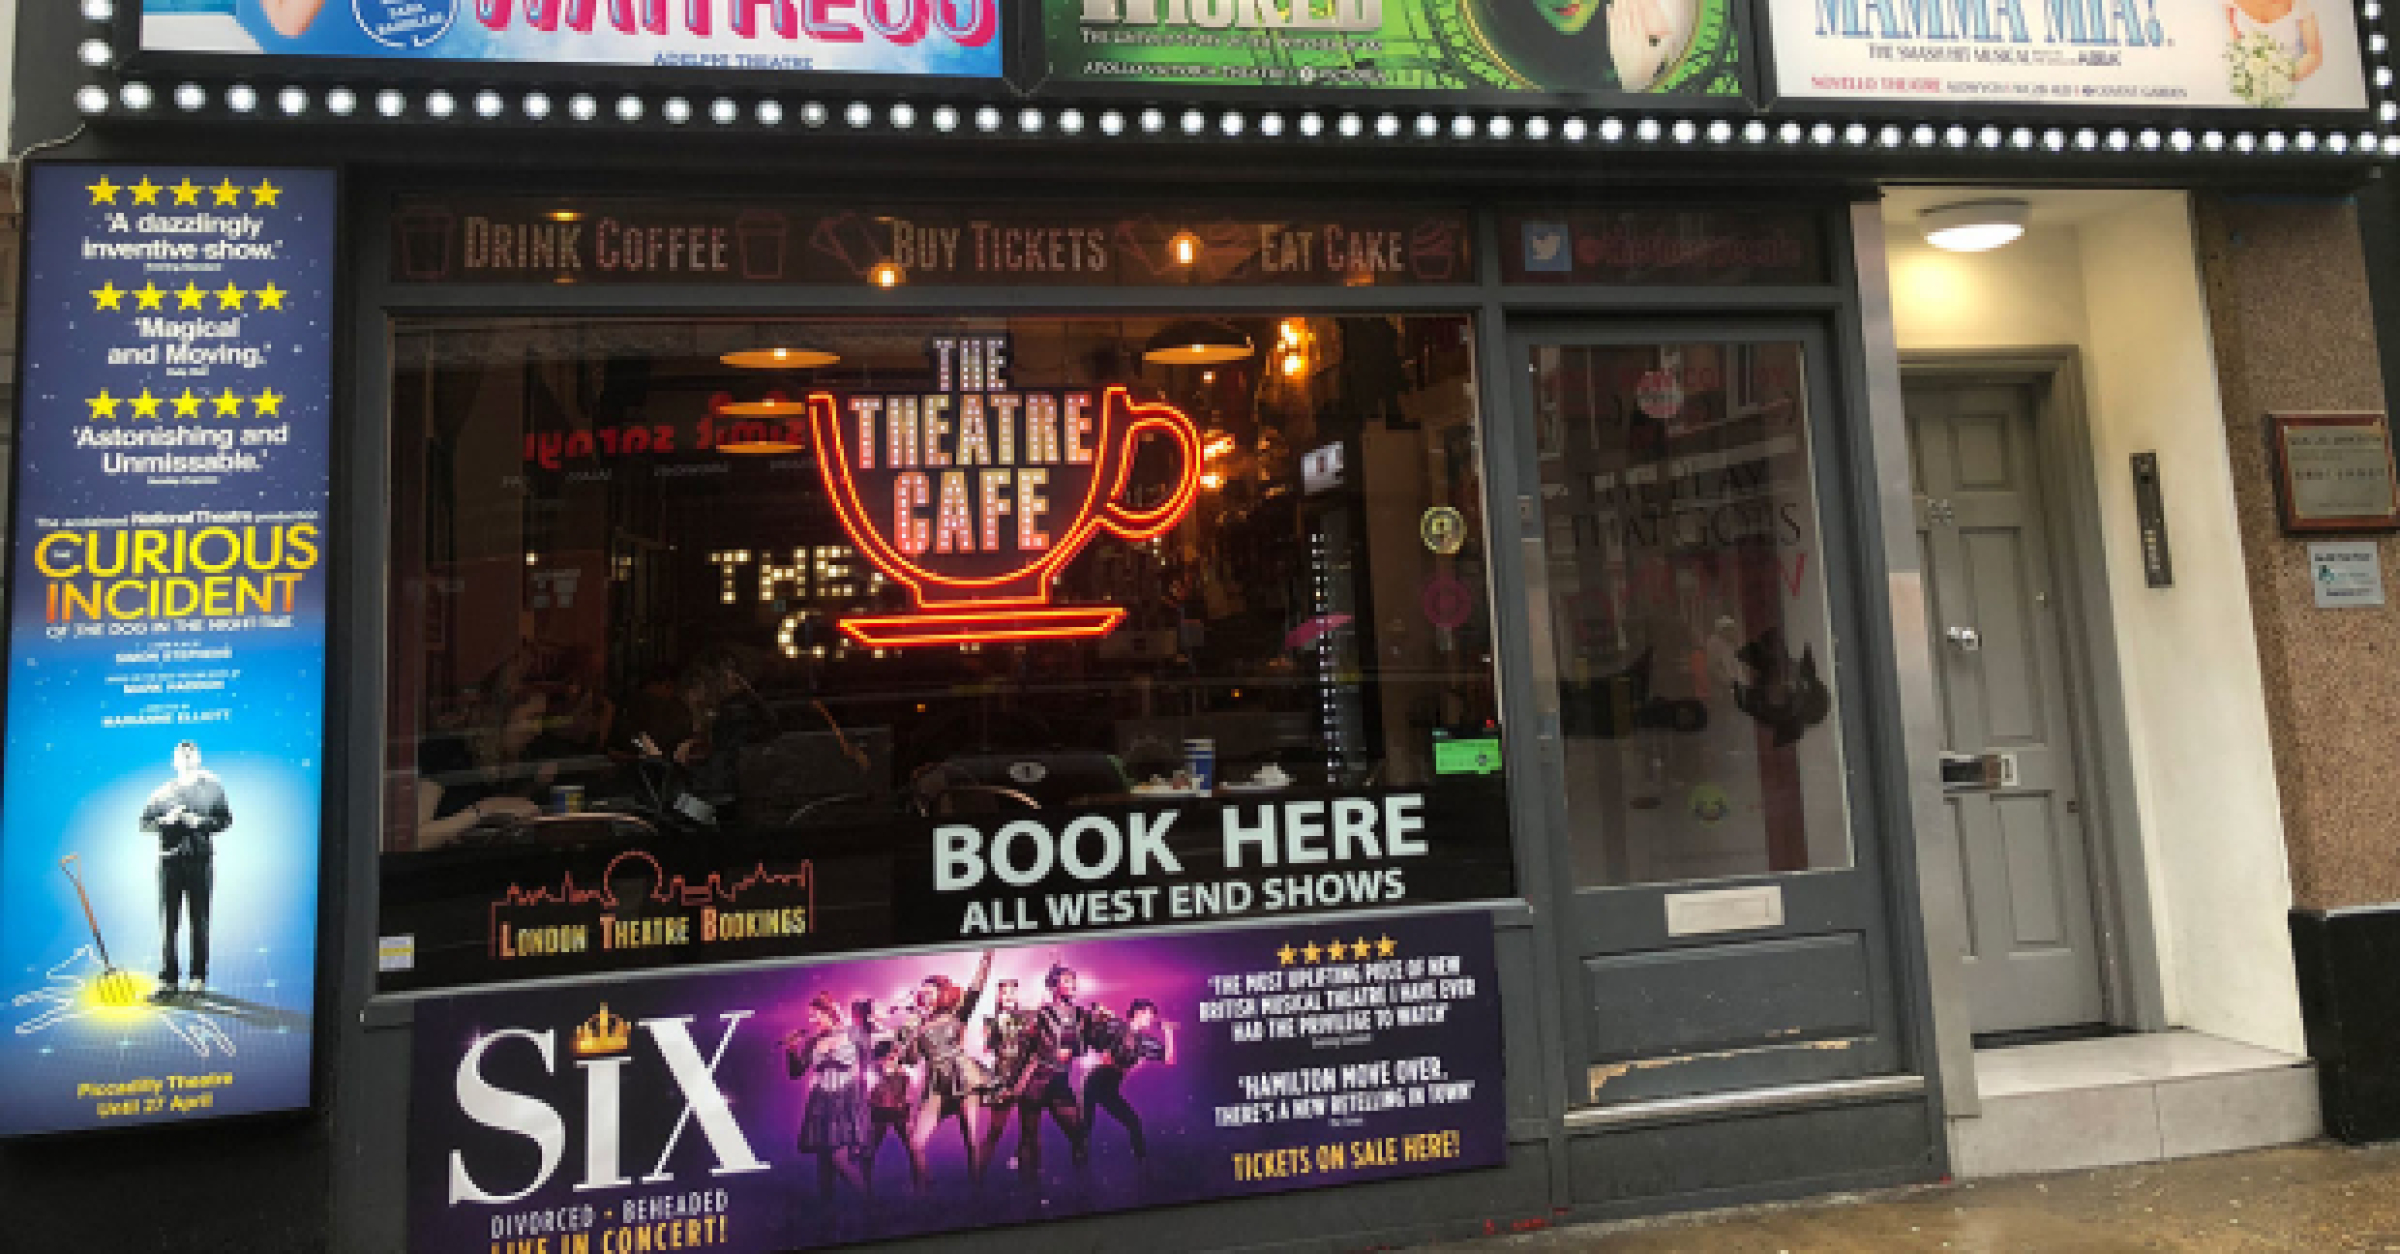 Brand New Theatre Café To Open On St Martins Lane In London